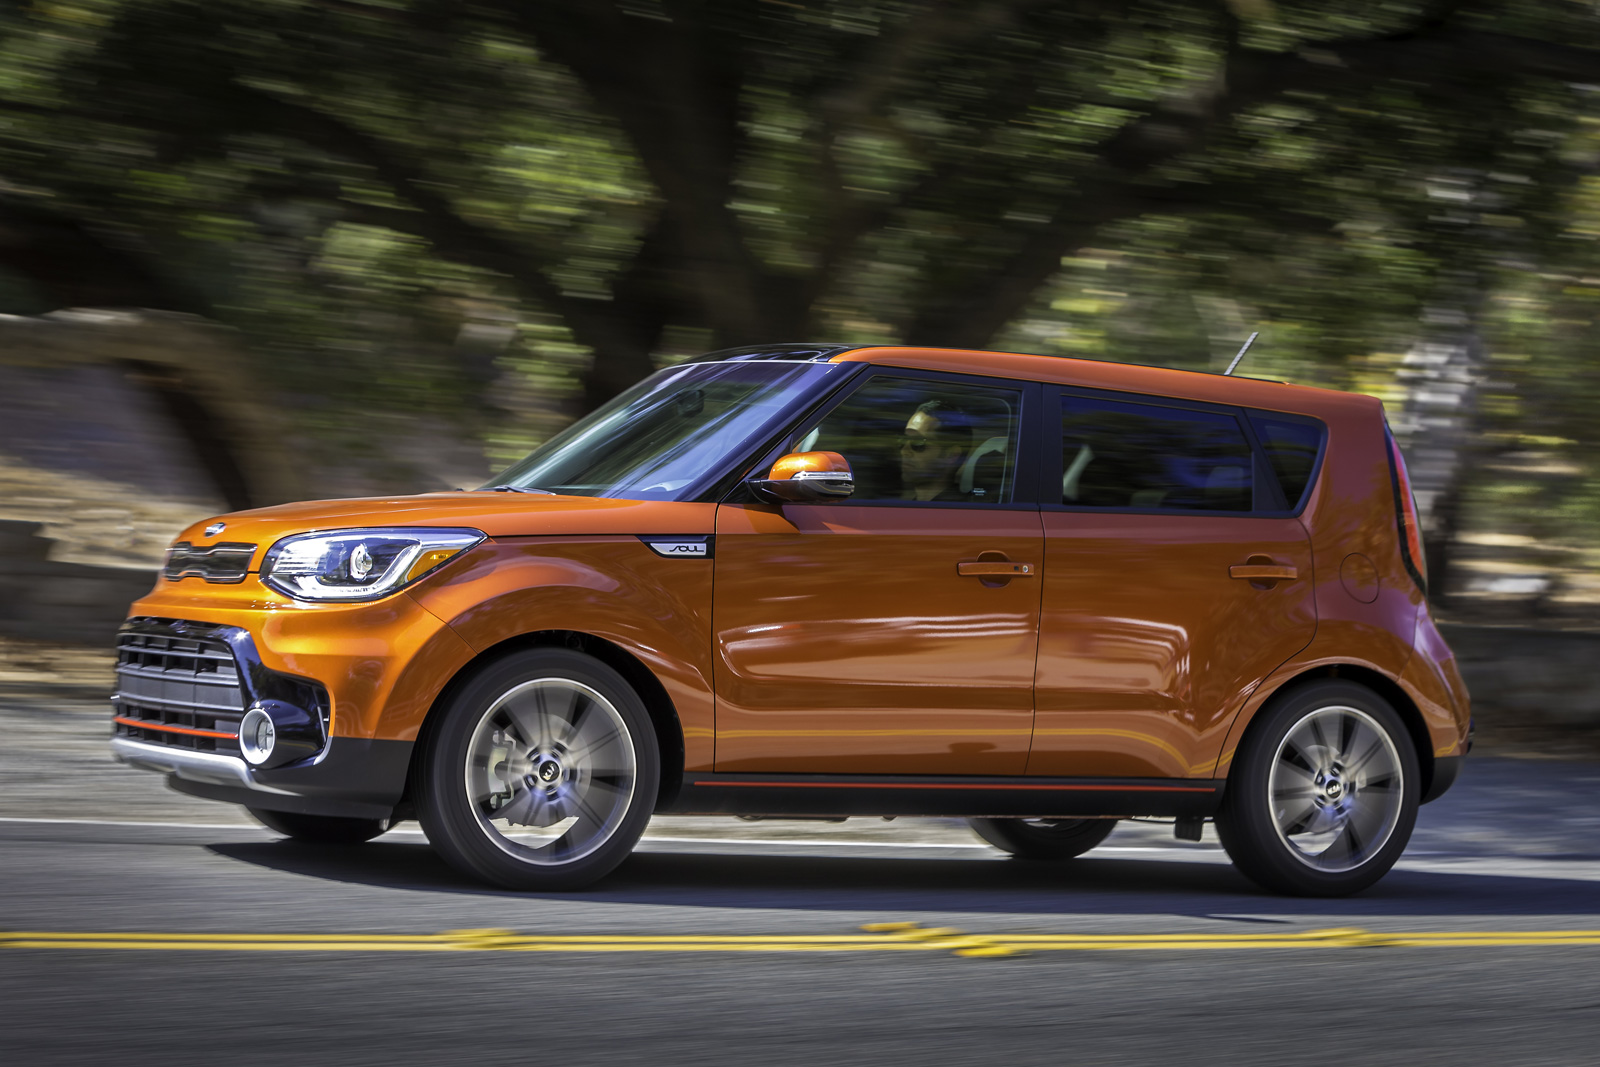 kia soul gains turbo power with 2017 exclaim model. Black Bedroom Furniture Sets. Home Design Ideas